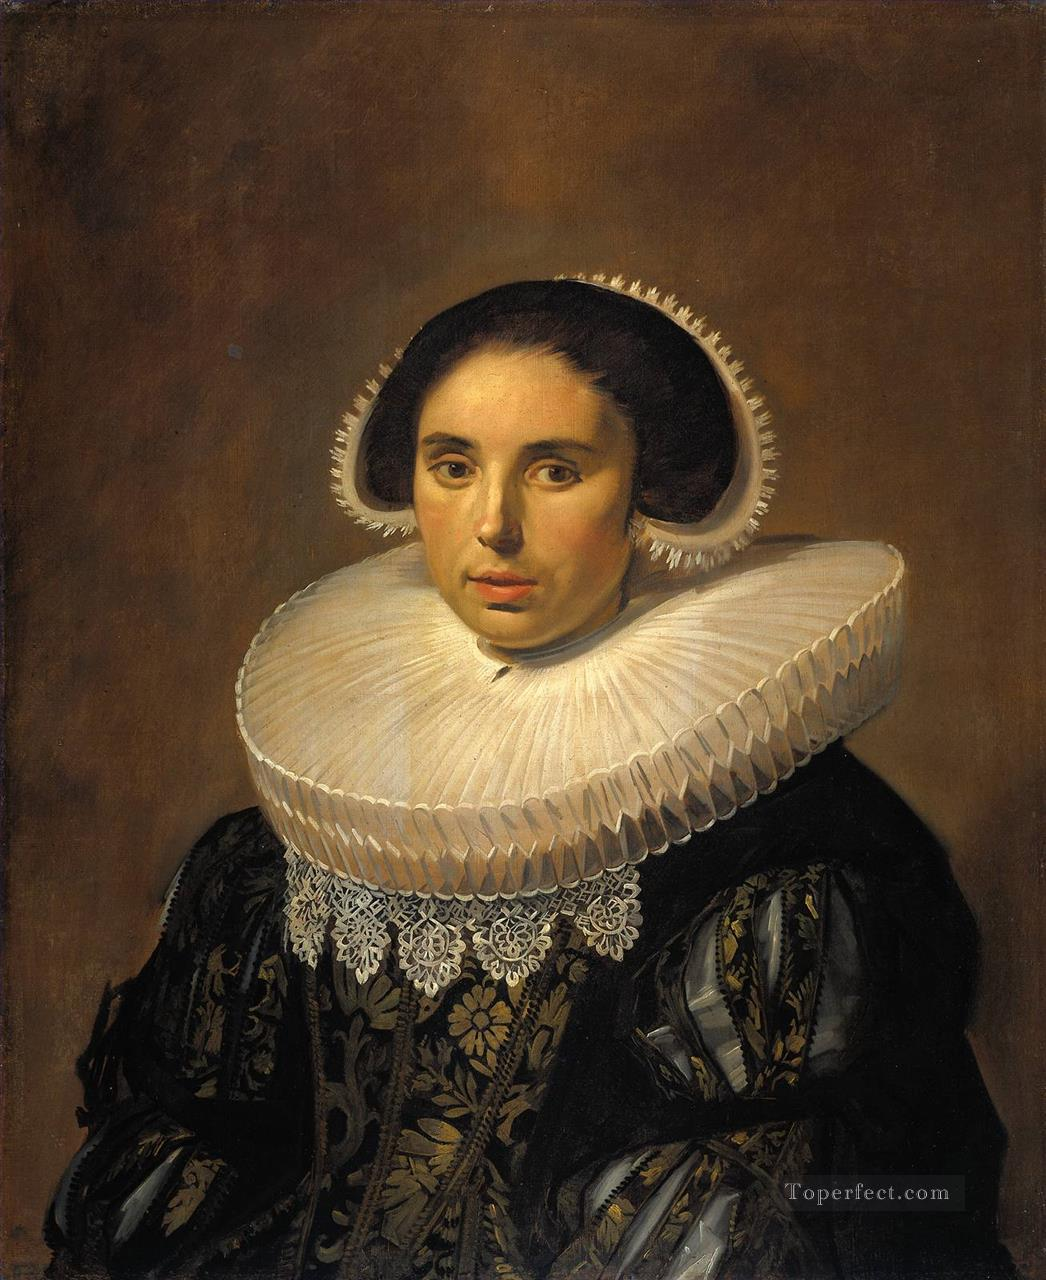 4-Portrait-of-a-woman-possibly-Sara-Wolphaerts-van-Diemen-Dutch-Golden-Age-Frans-Hals.jpg